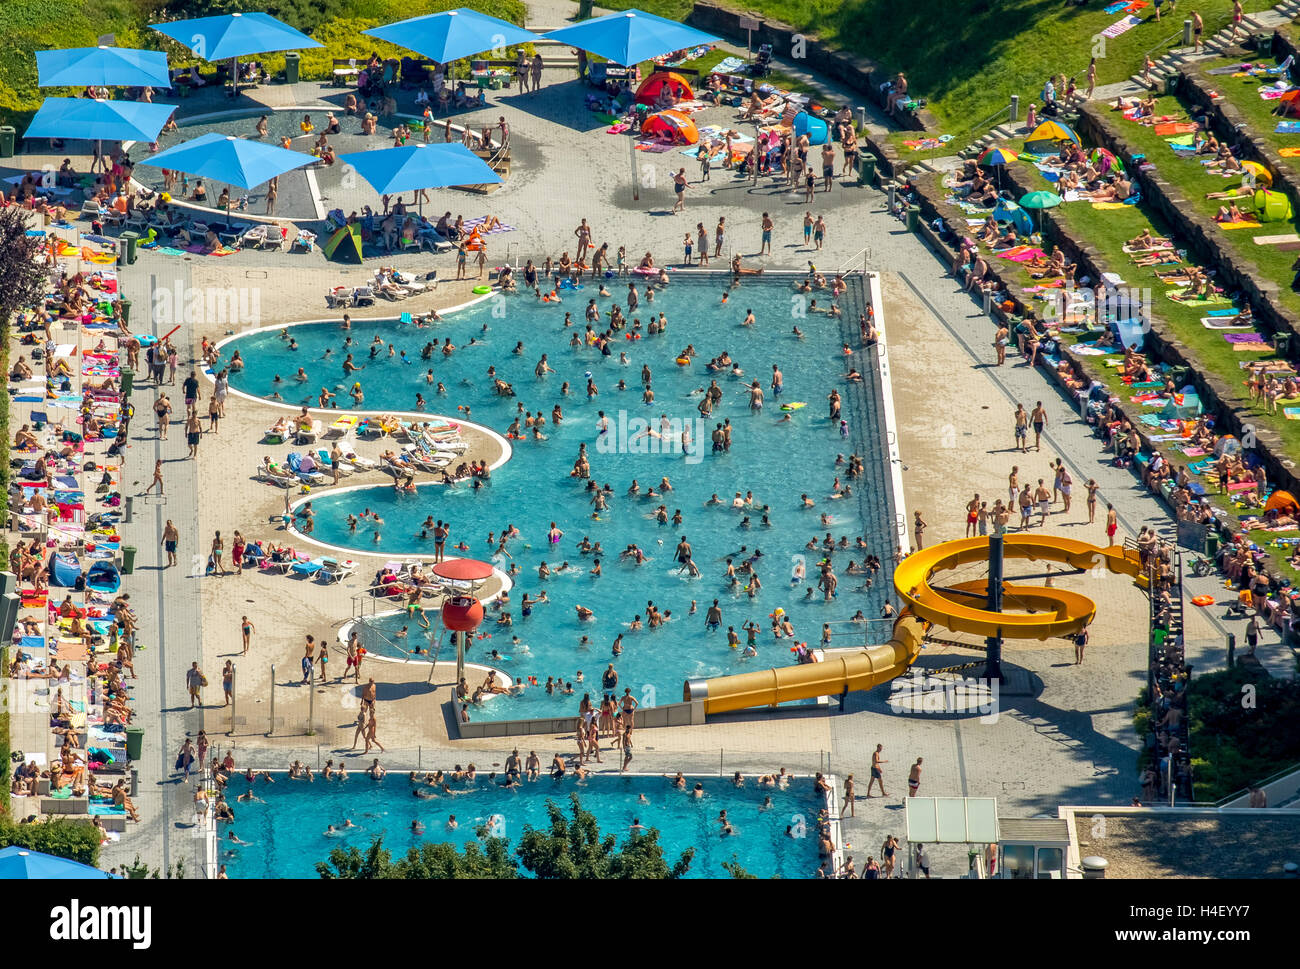 Aerial view, pool, swimmer pool with a wavy margin, lawn, Bathers in outdoor pool Annen, Witten, Ruhr district - Stock Image